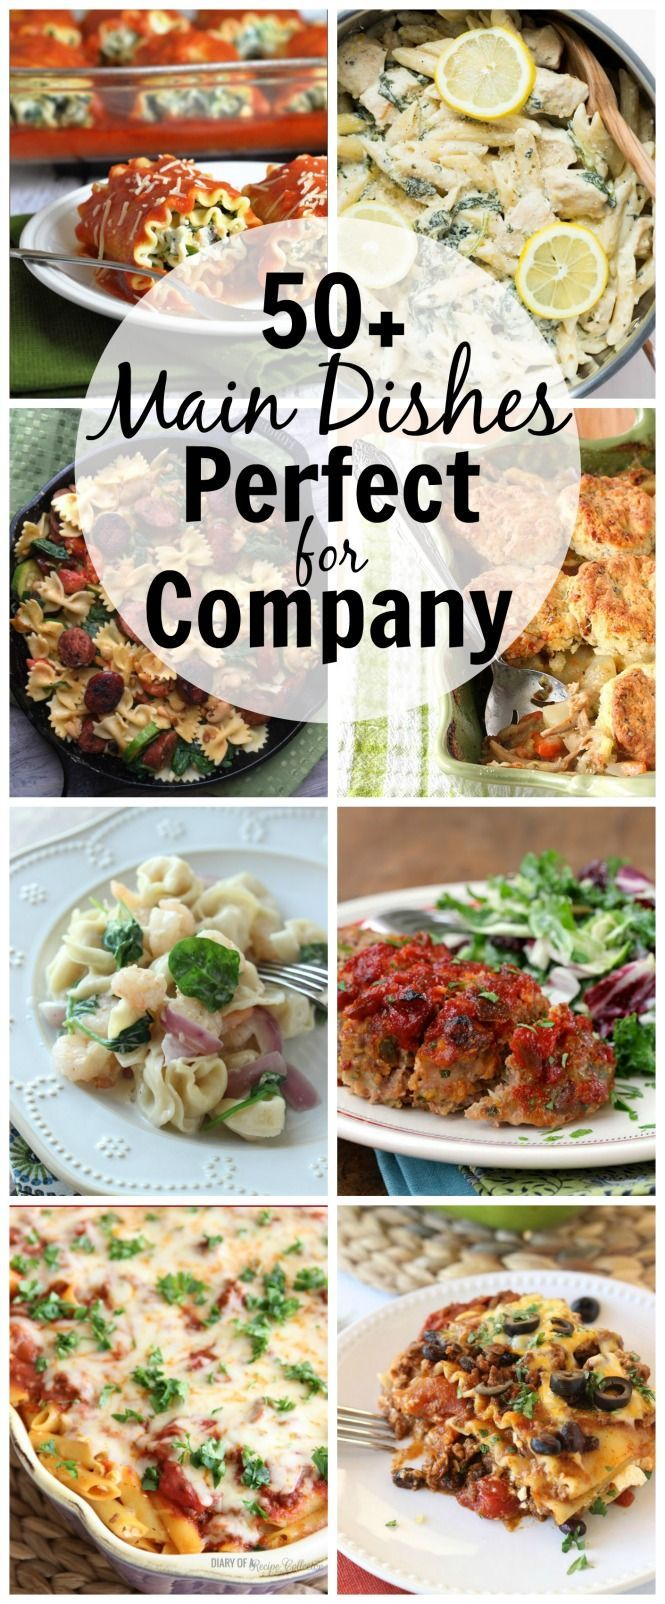 50+ main dishes perfect for company | best comfort foods | pinterest